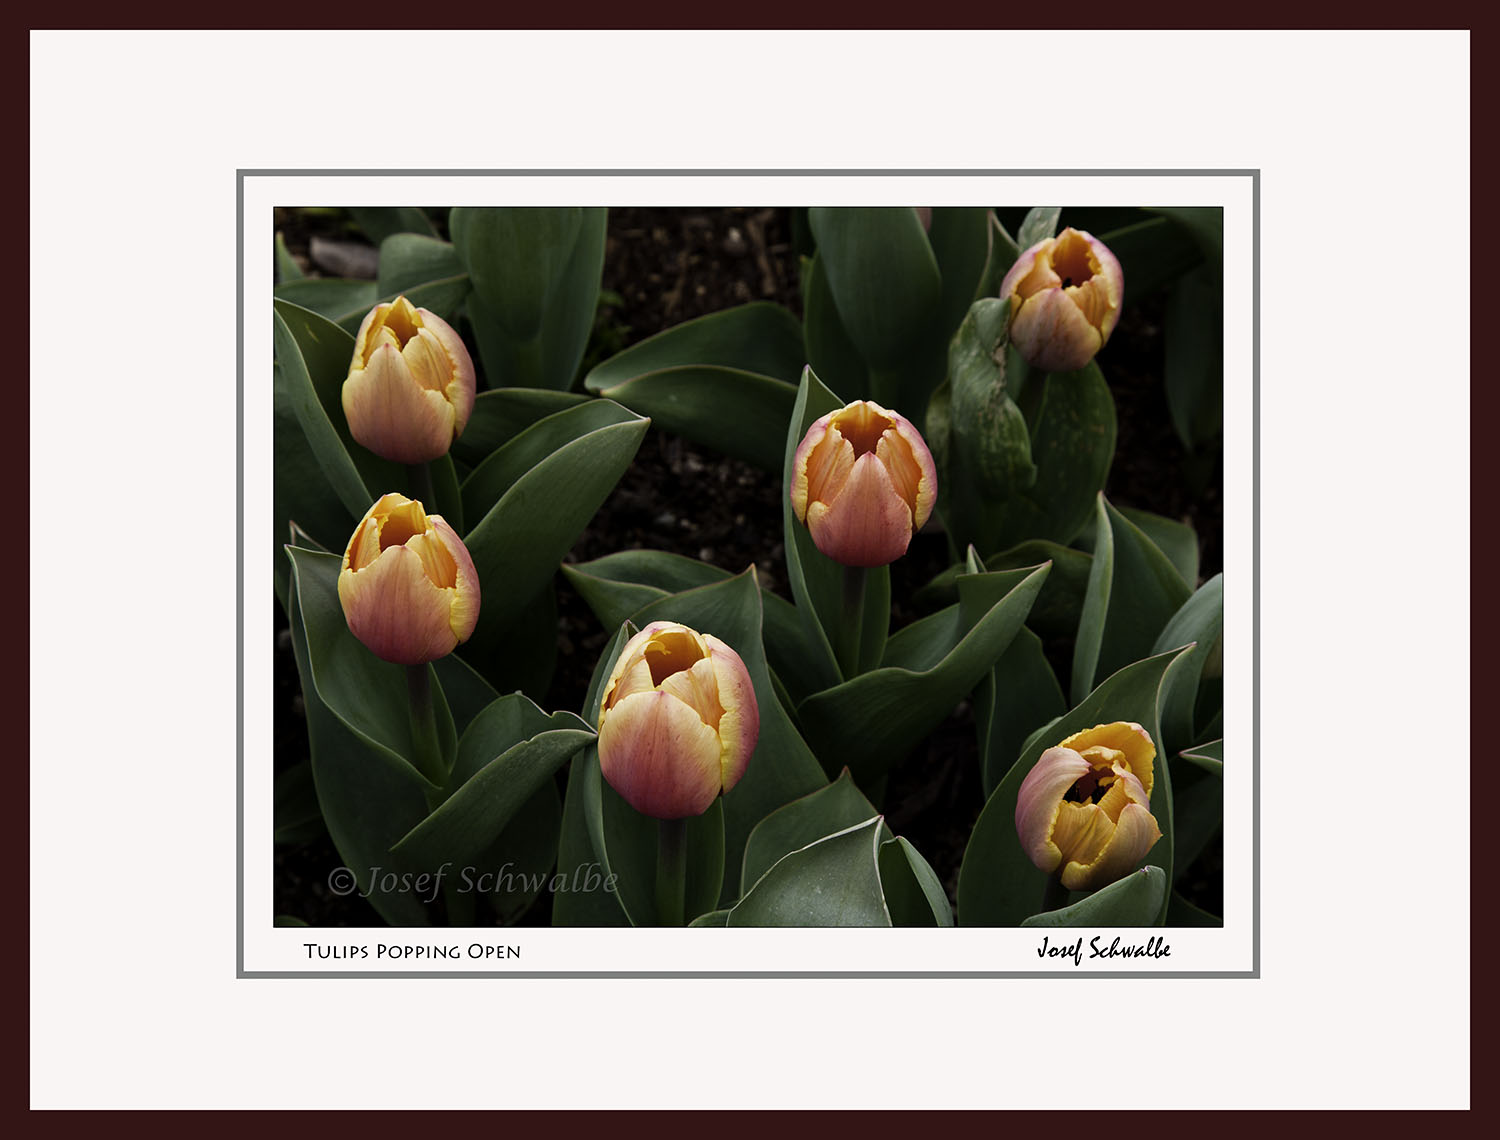 Tulips Popping Open